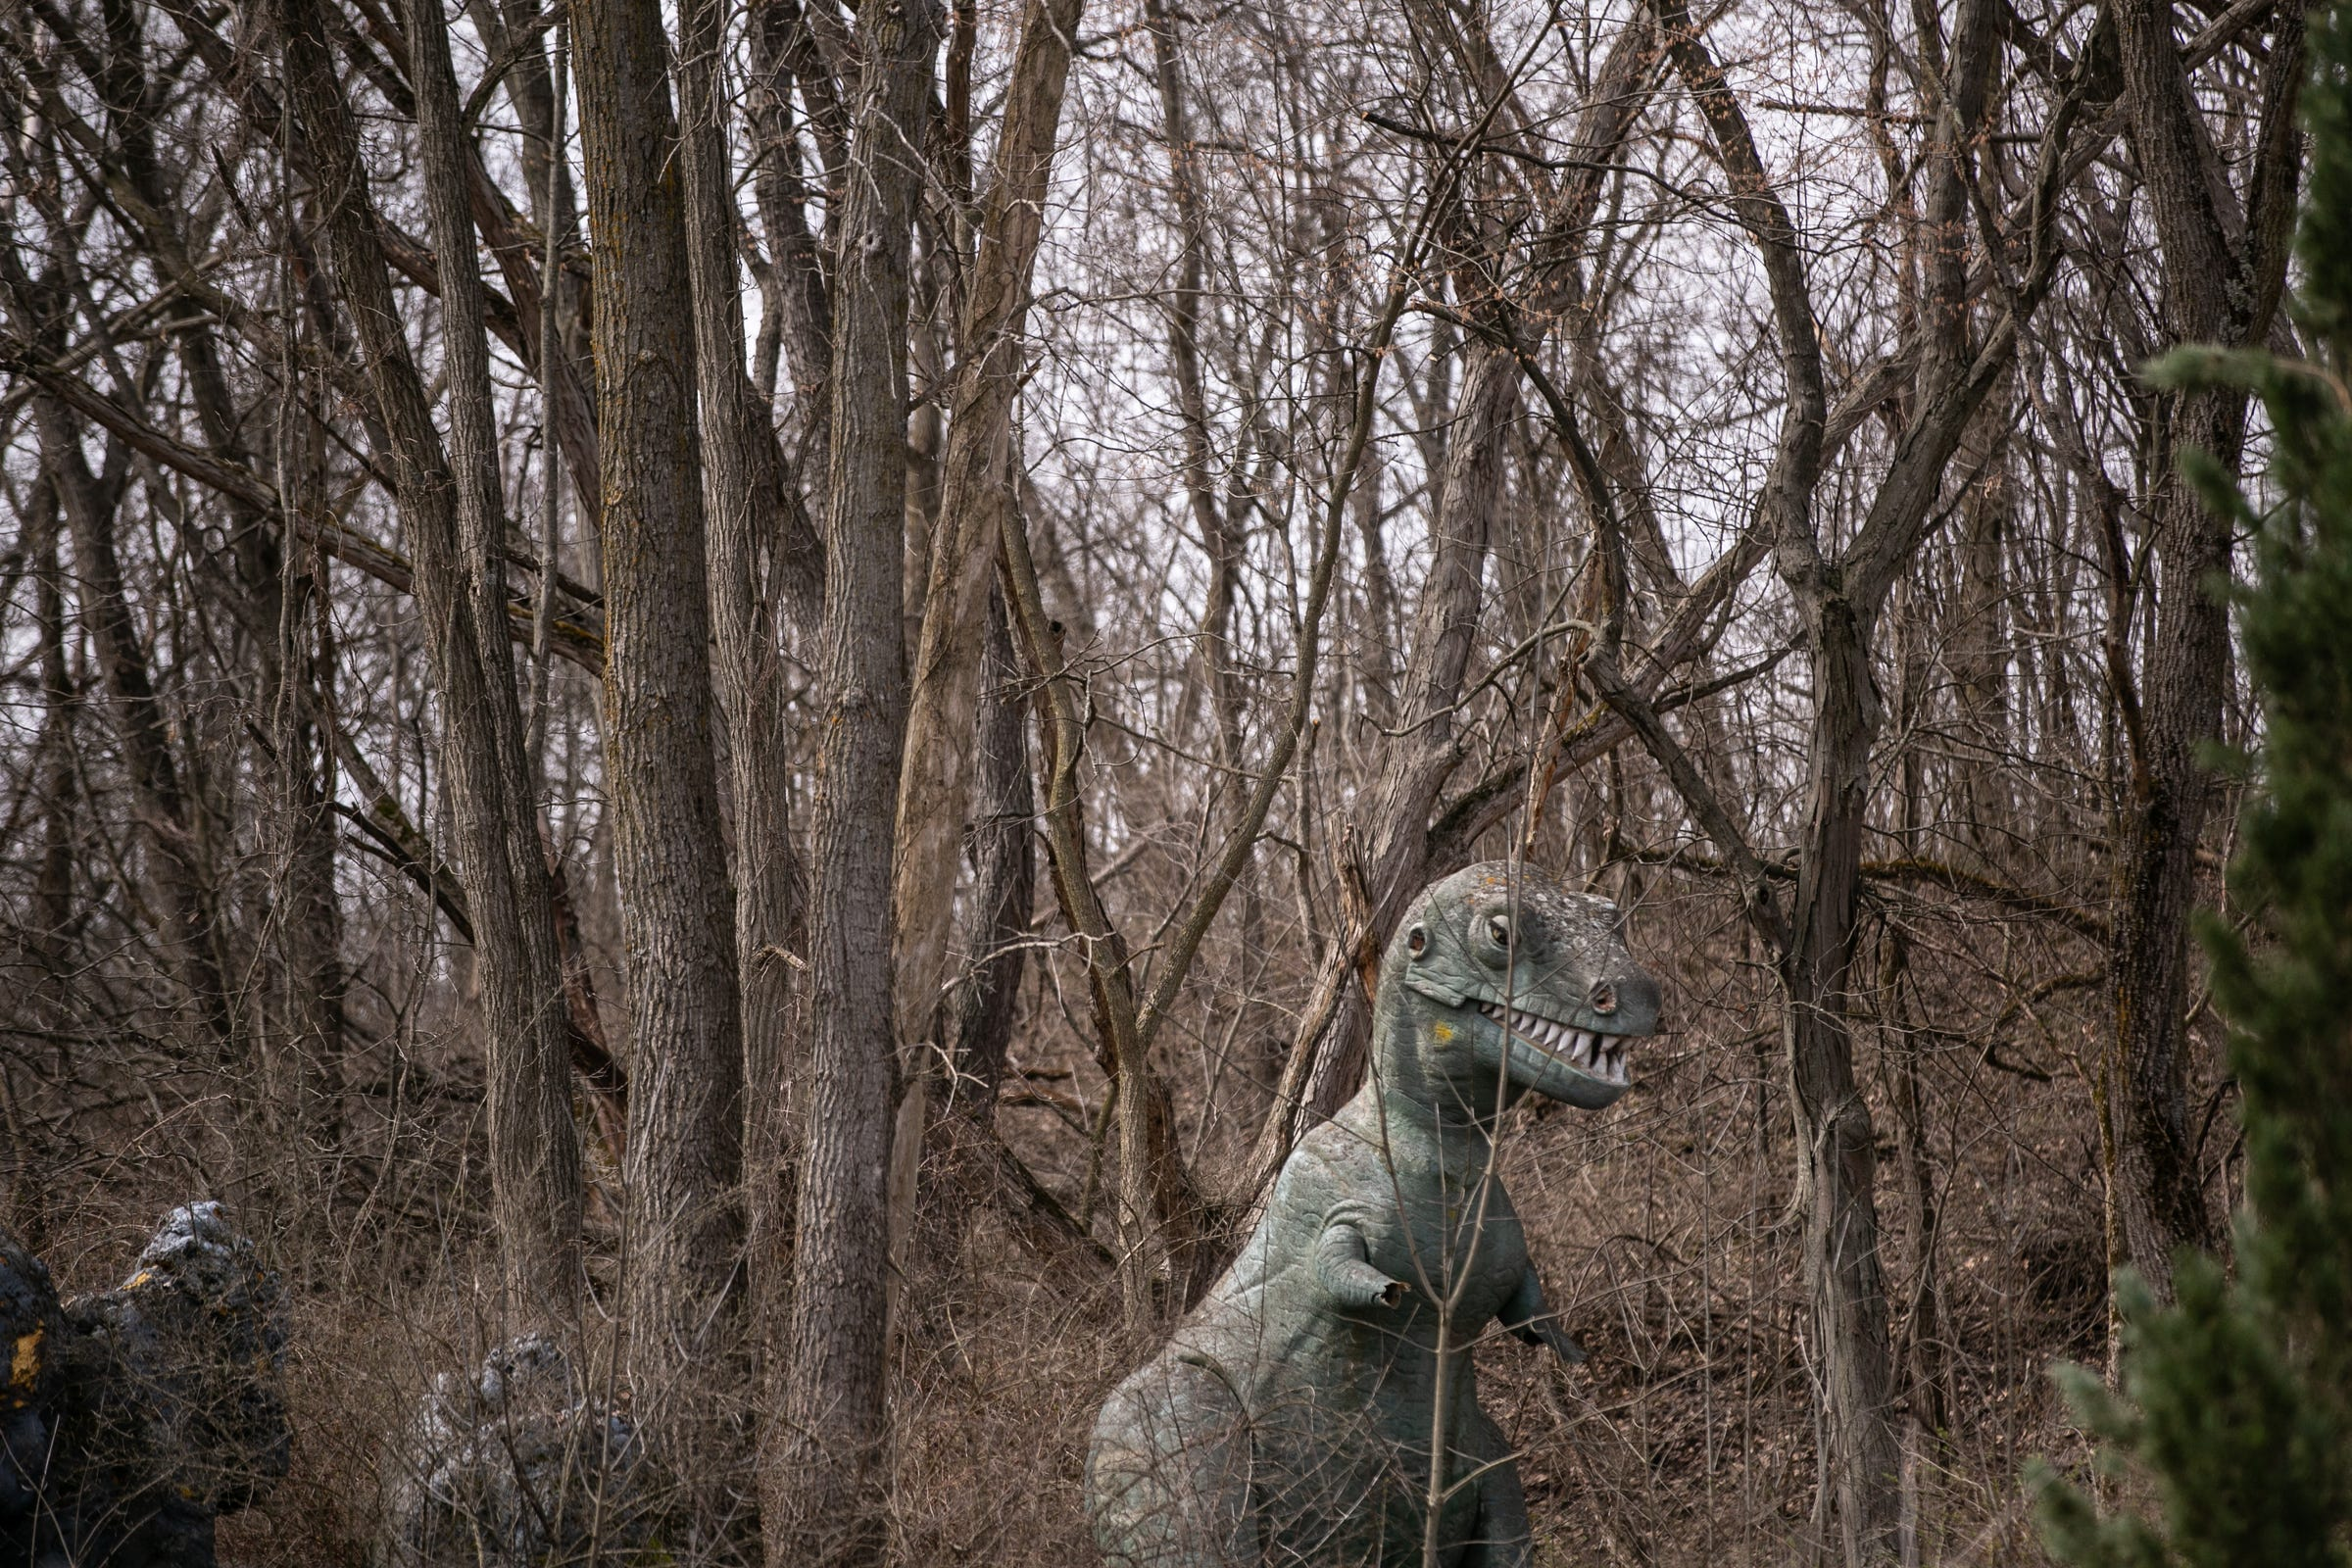 A large Tyrannosaurus Rex statue made of fiberglass stands in the woods at Prehistoric Forest, a once-popular tourist attraction in Irish Hills, as seen on Tuesday, April 16, 2019.